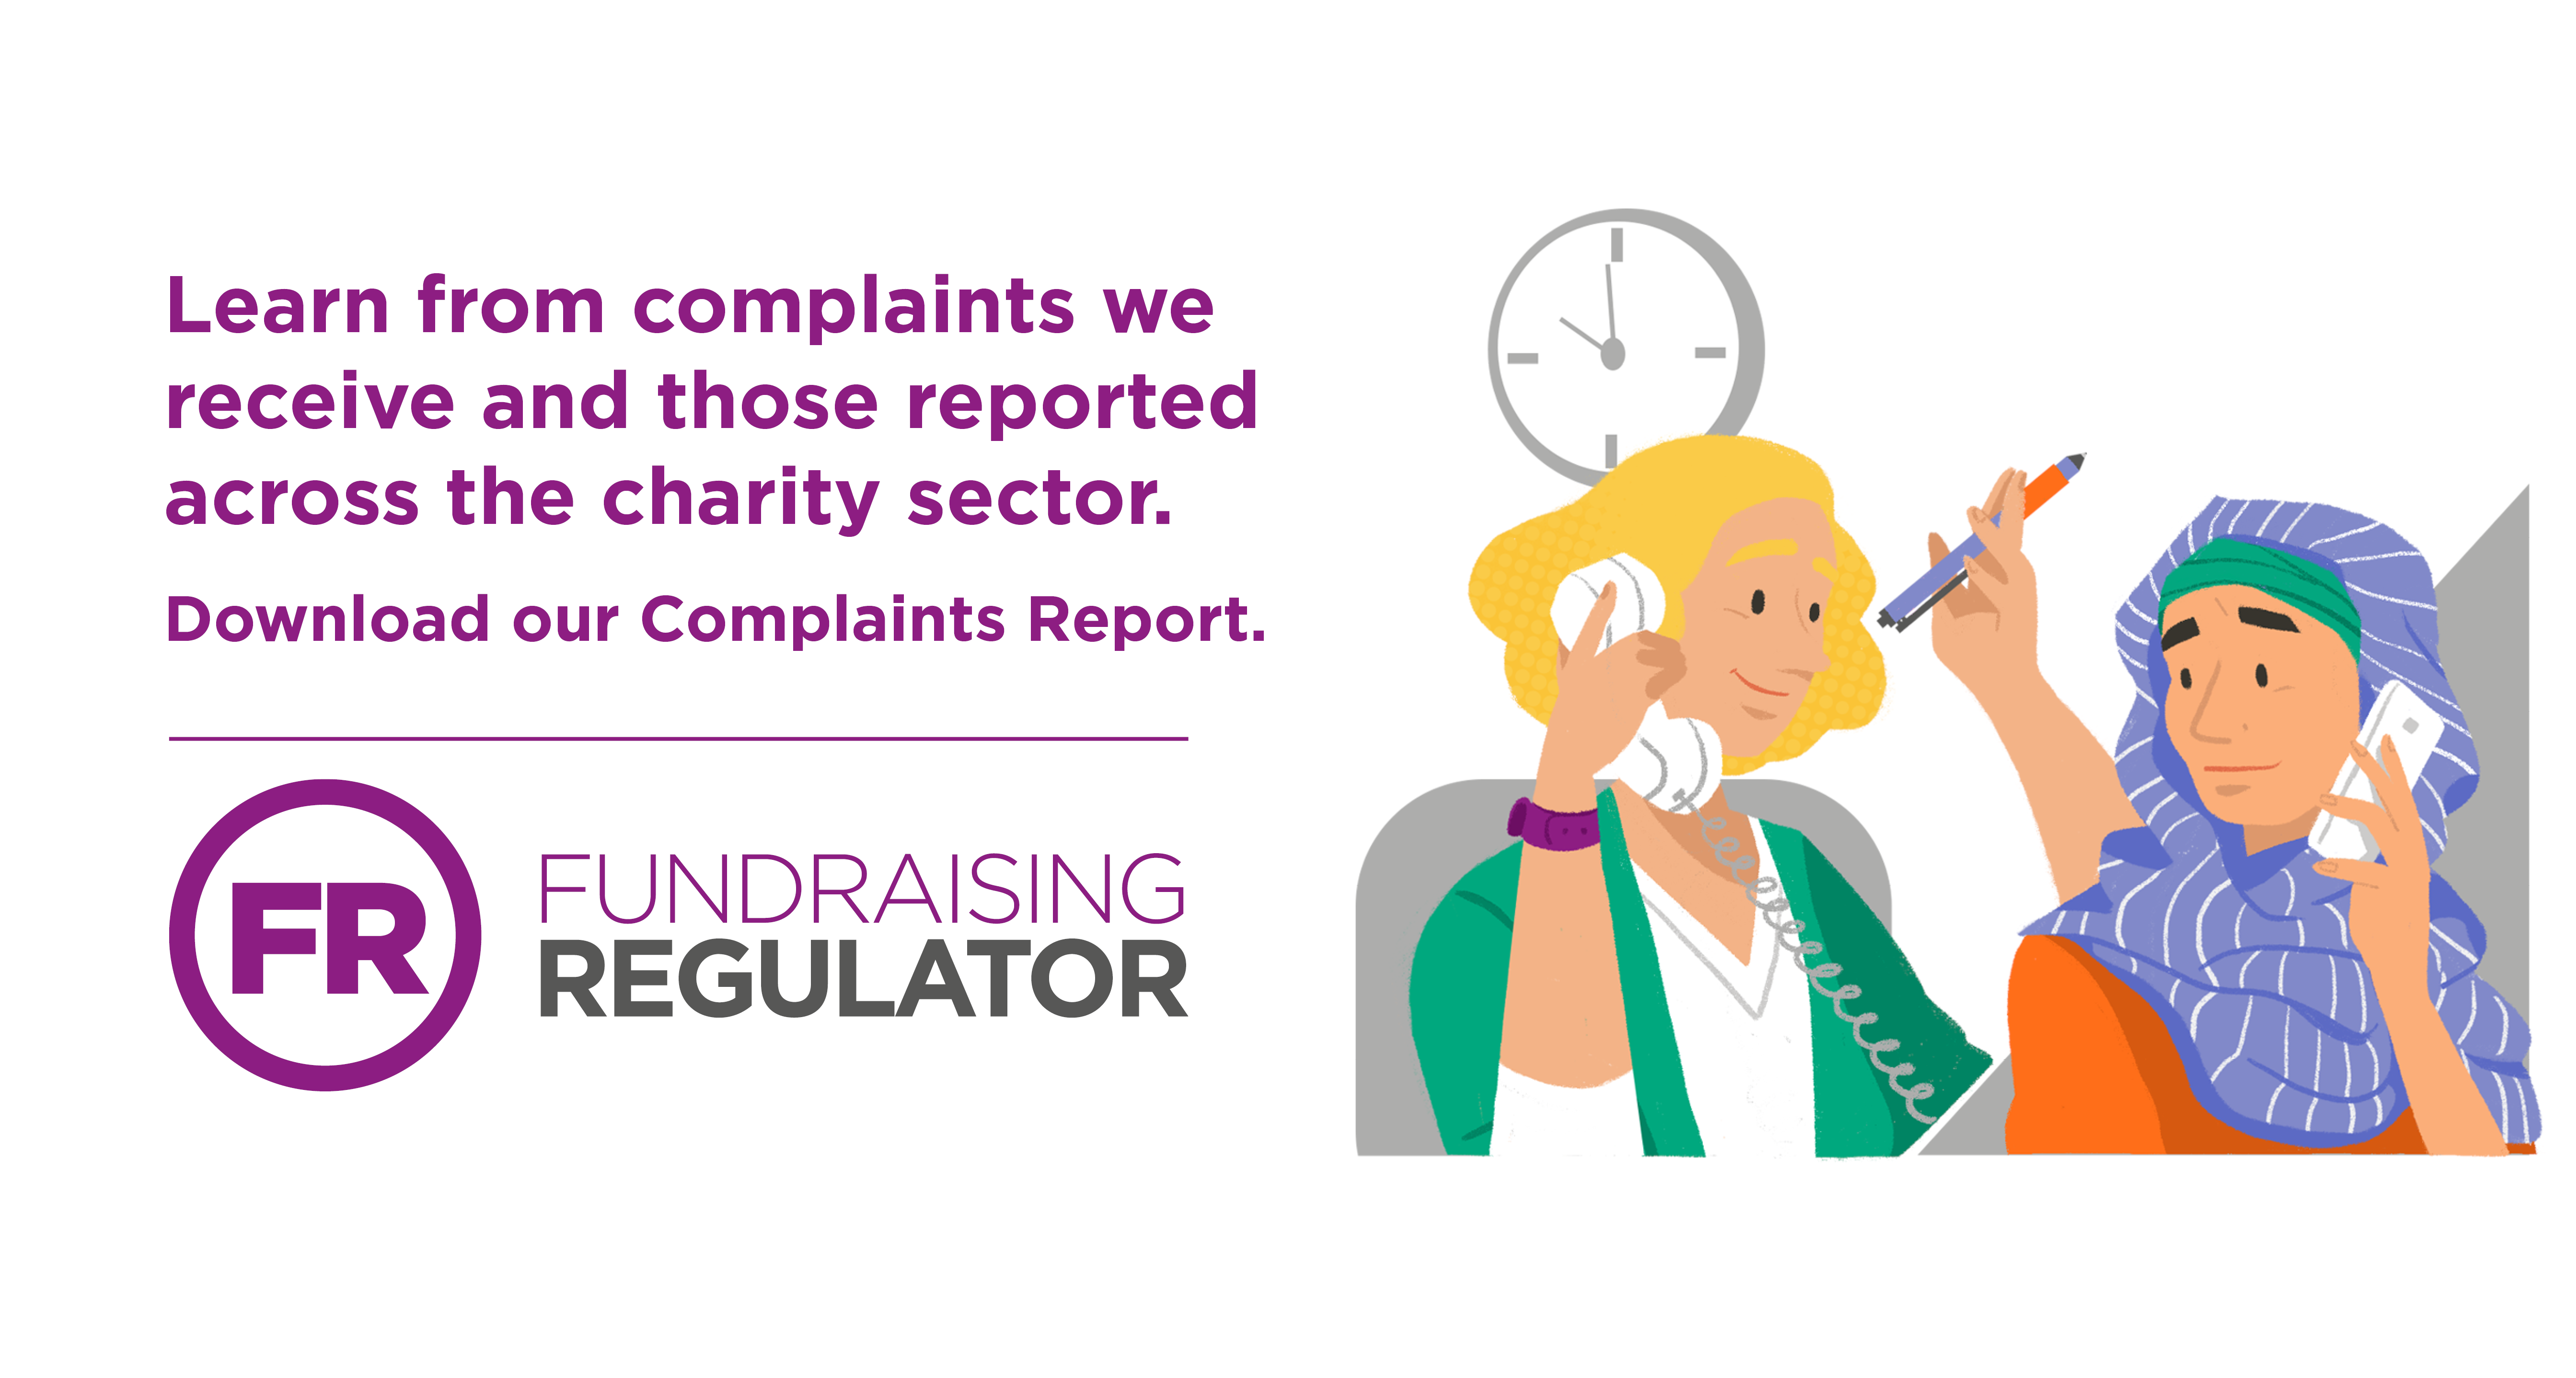 Learn from complaints we receive and those reported across the charity sector. Download our Complaints Report.